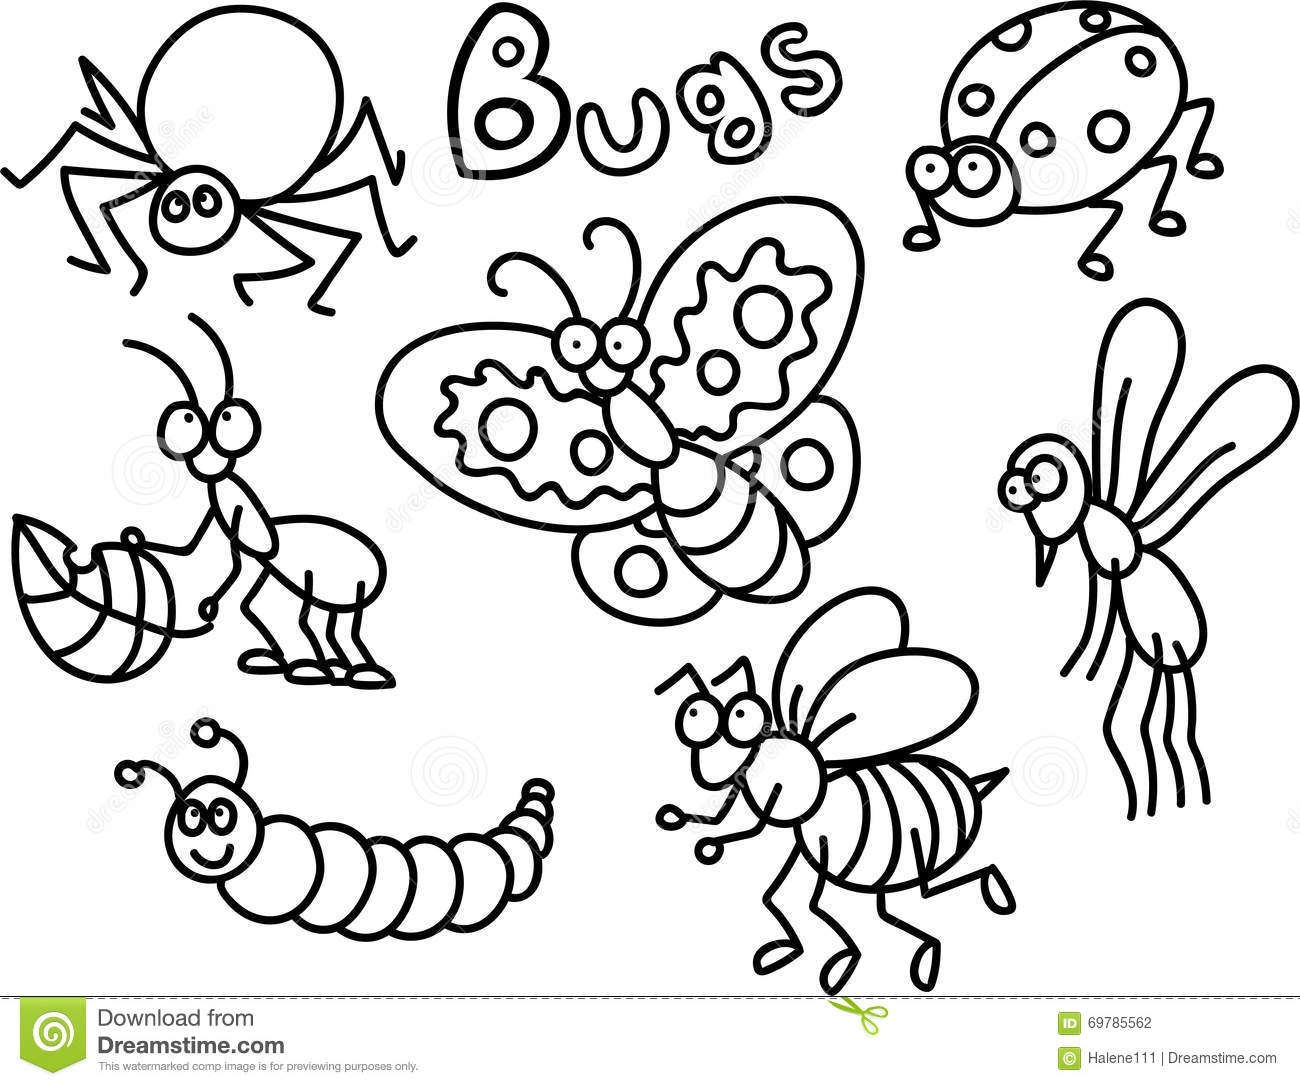 spider web coloring page - stock illustration bugs coloring page children lot cute cartoon style image